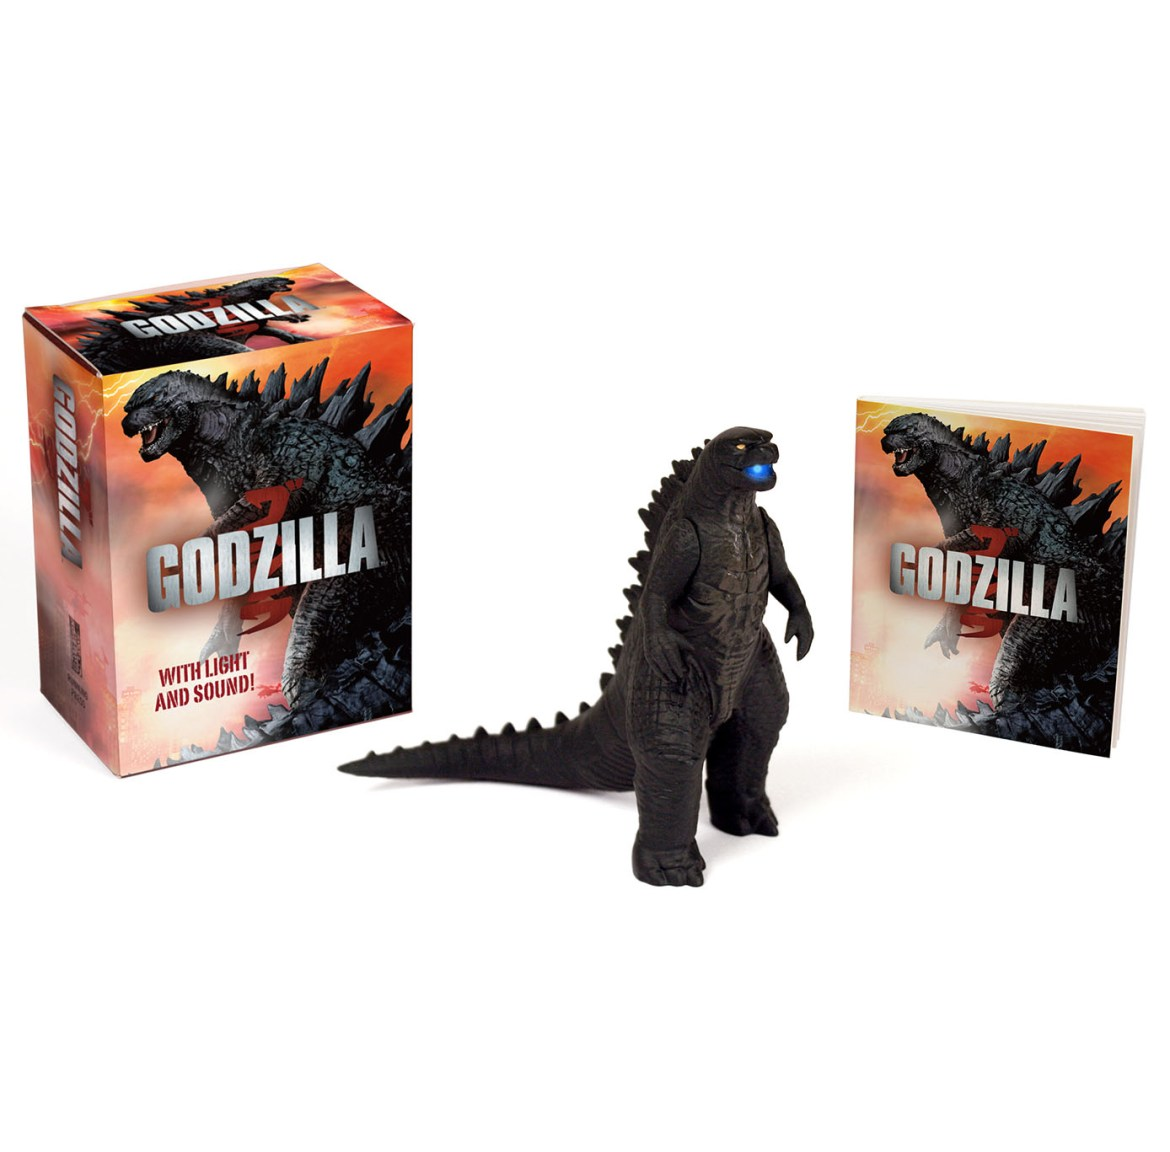 First Godzilla 2014 Figure Revealed! With Lights & Sounds!